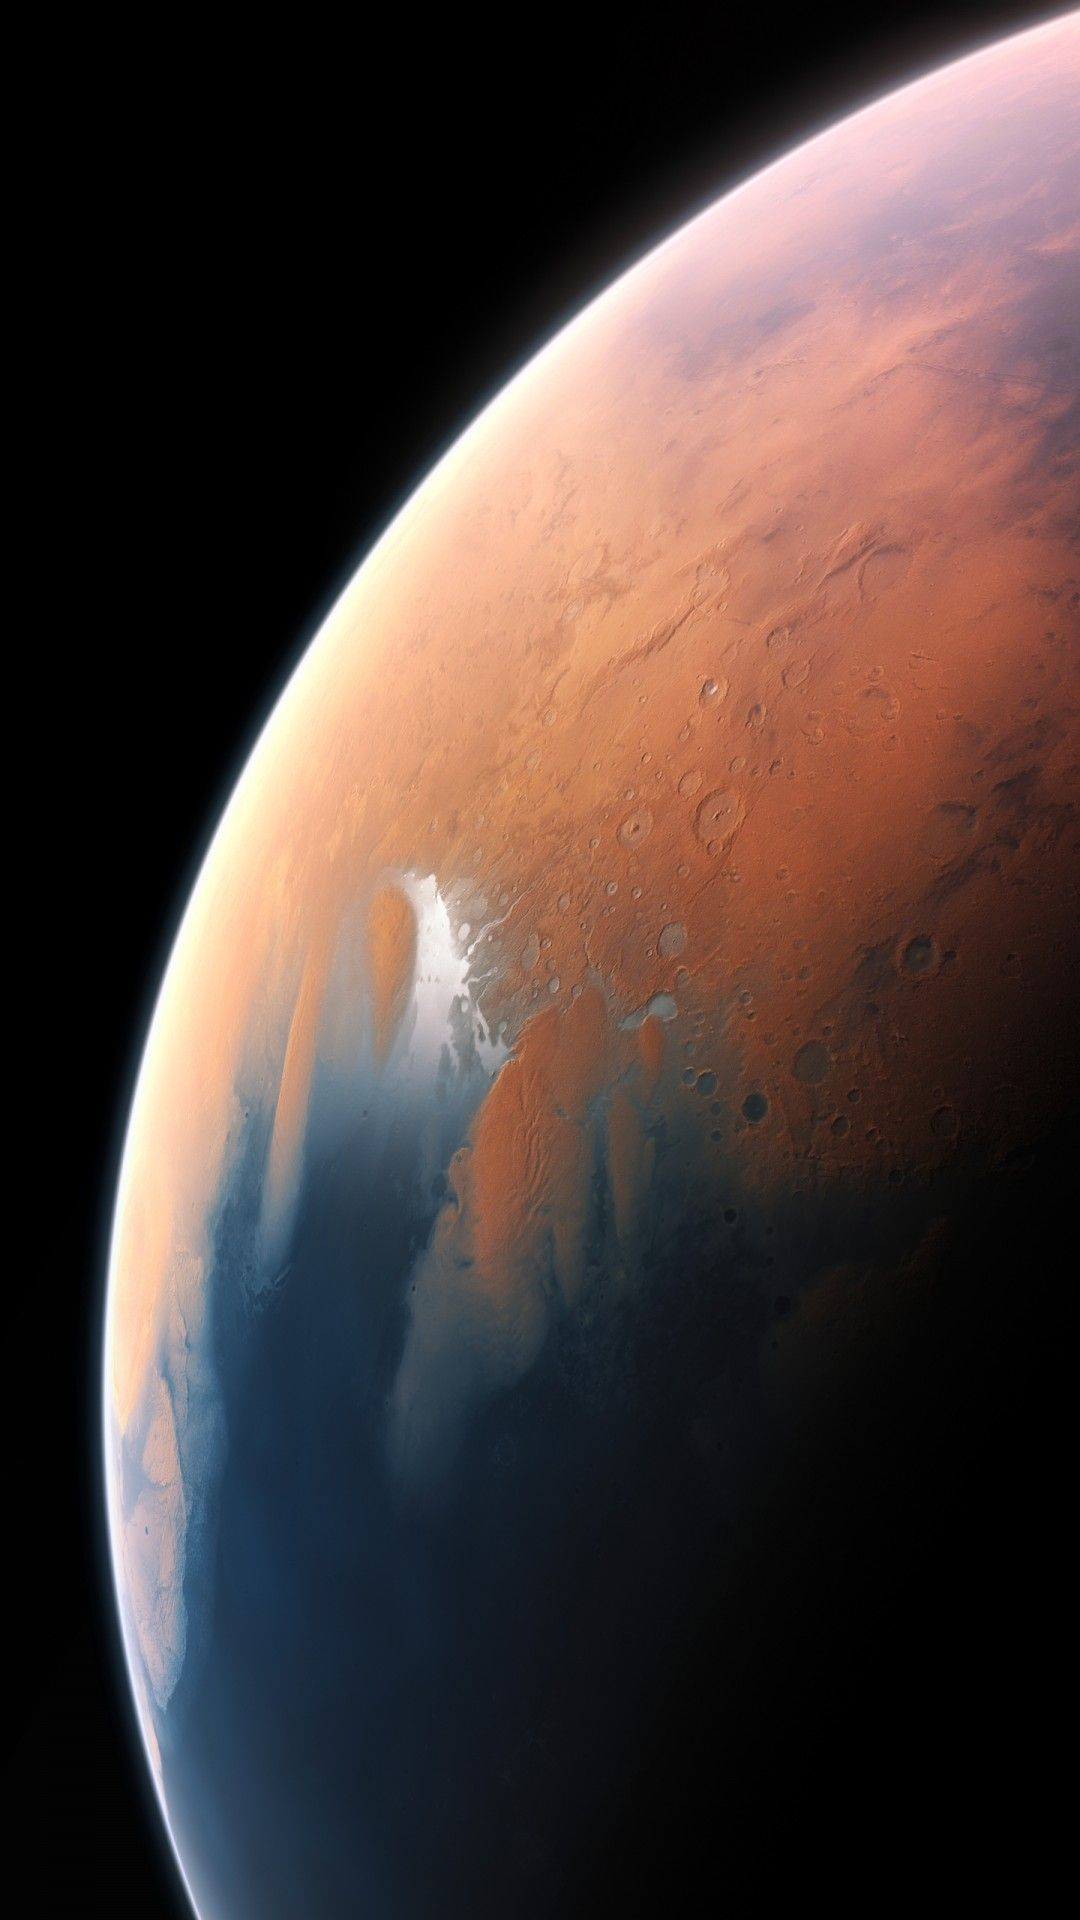 Mars Is An Amazing Planet Https Ift Tt 2isx5pw In 2020 Planets Wallpaper Wallpaper Earth Android Wallpaper Space